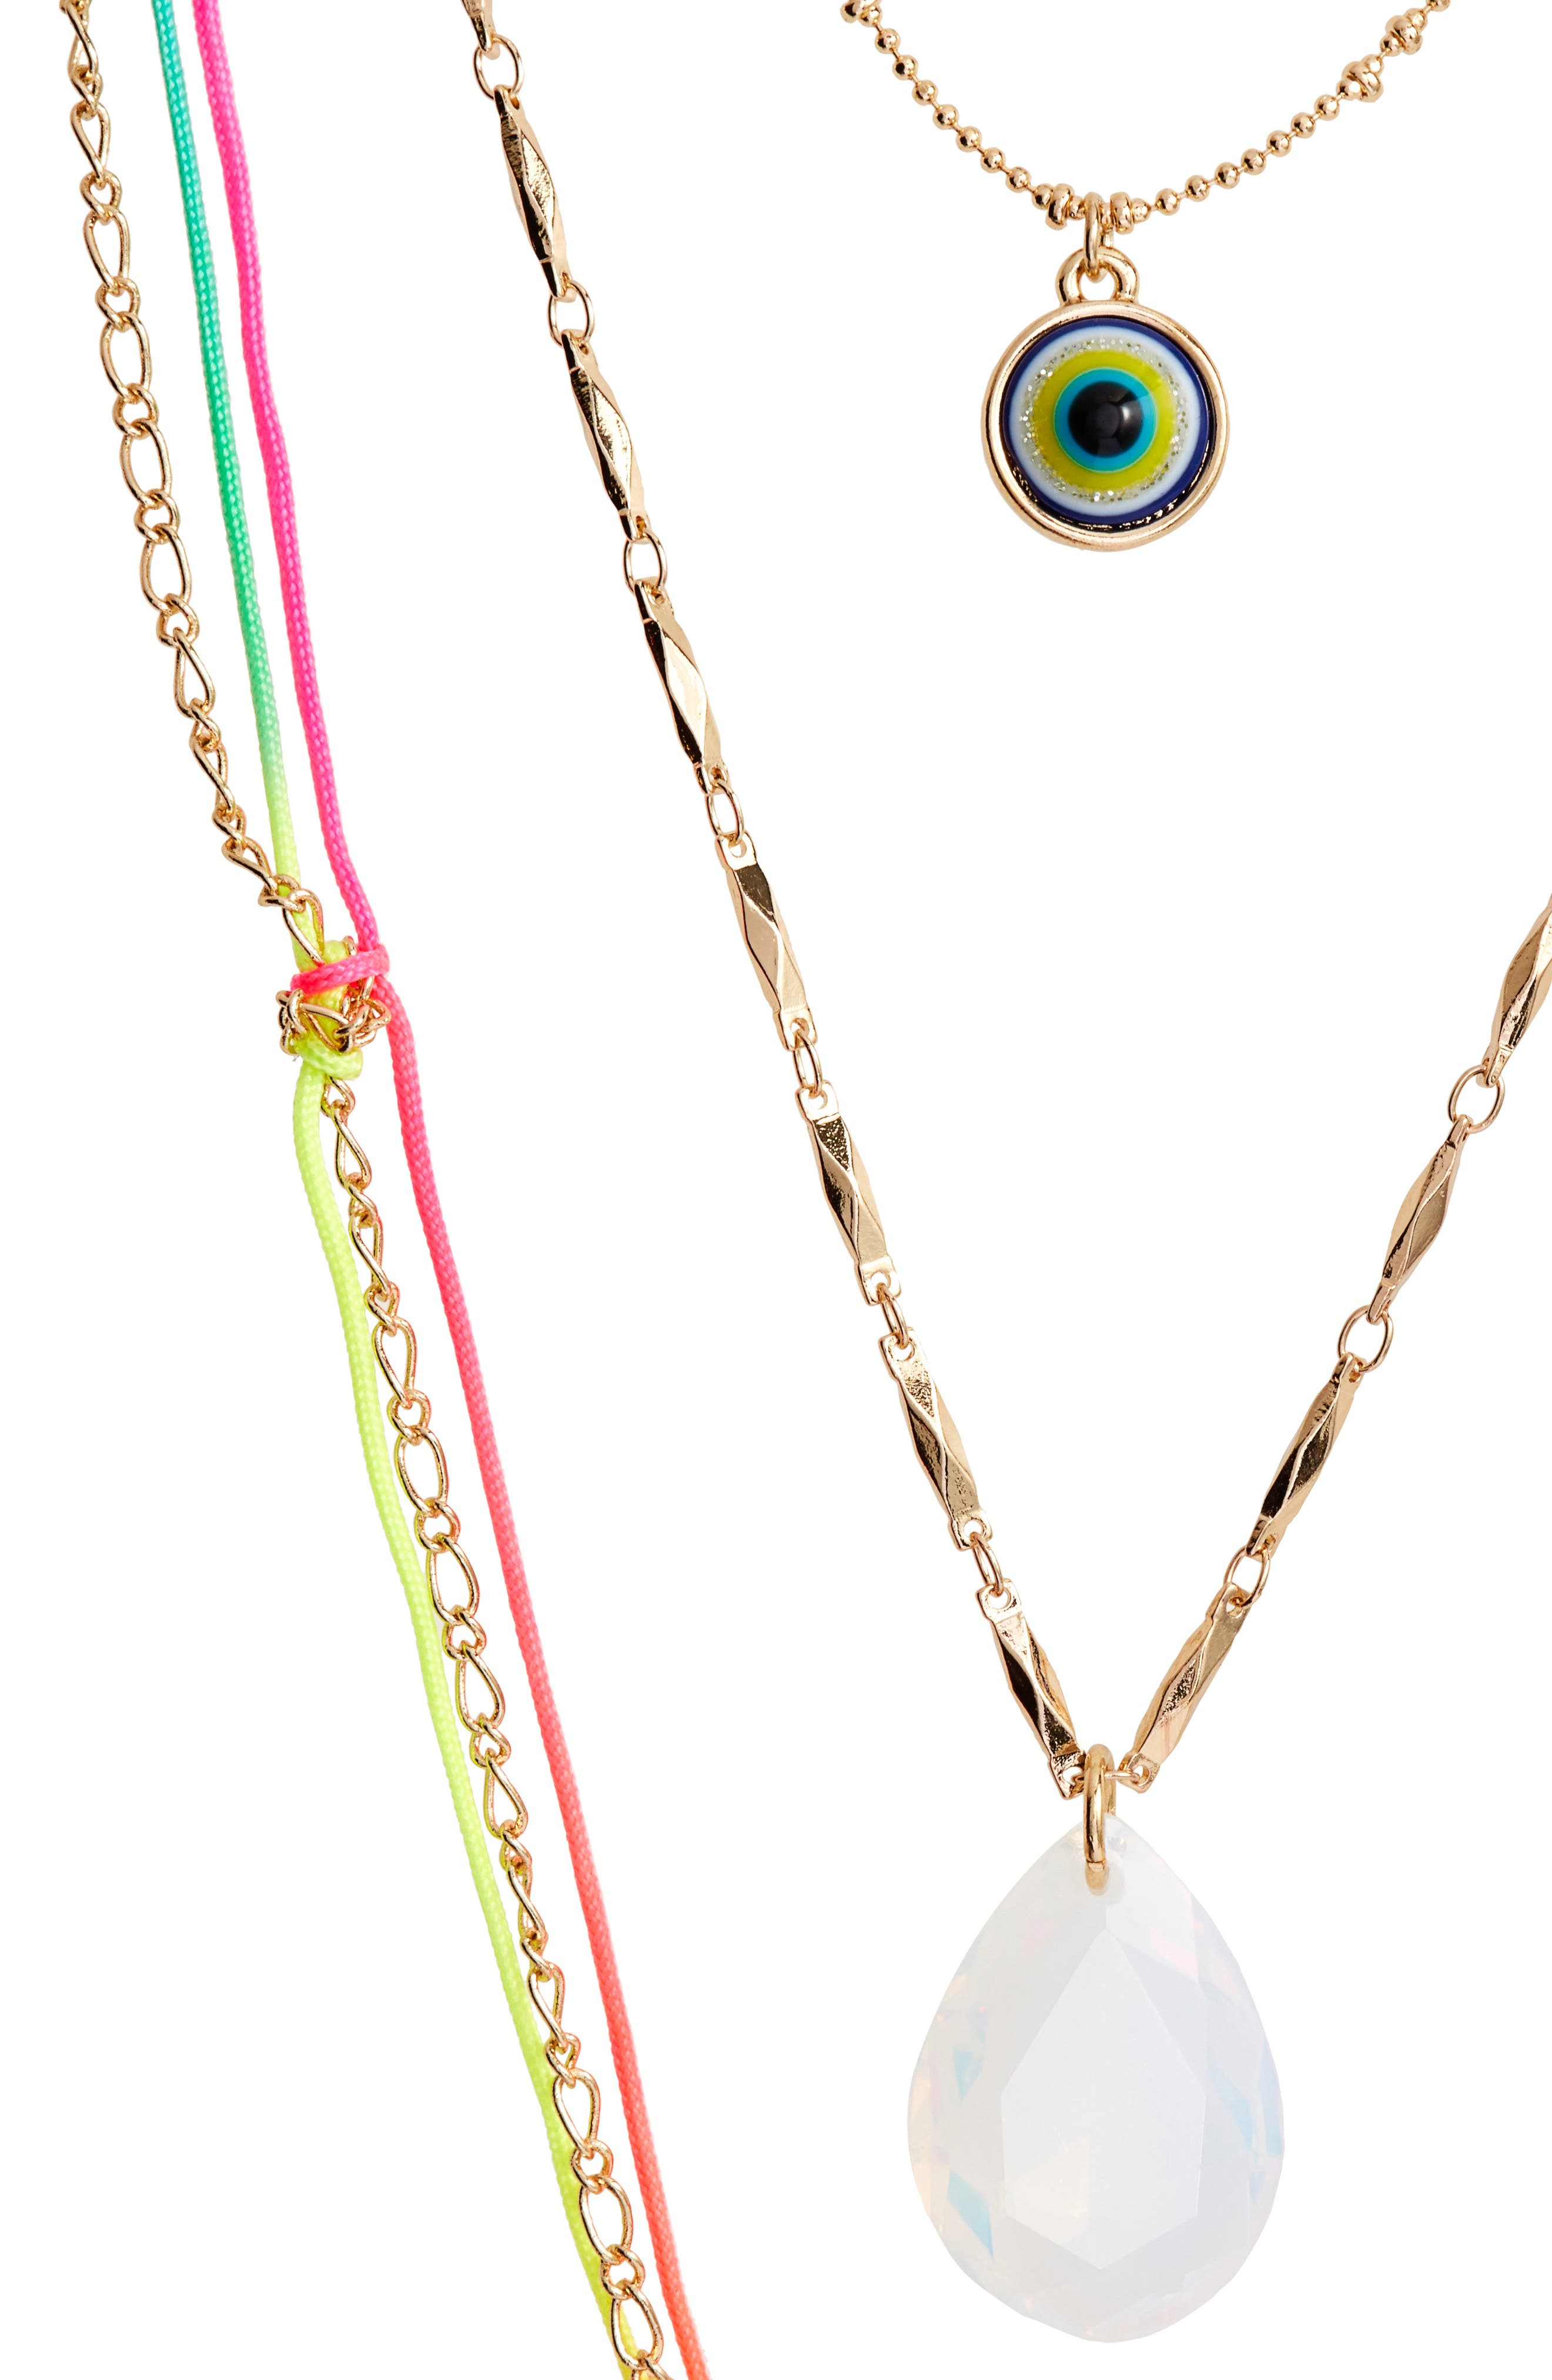 Charm Layered Necklace,                             Alternate thumbnail 2, color,                             Multi